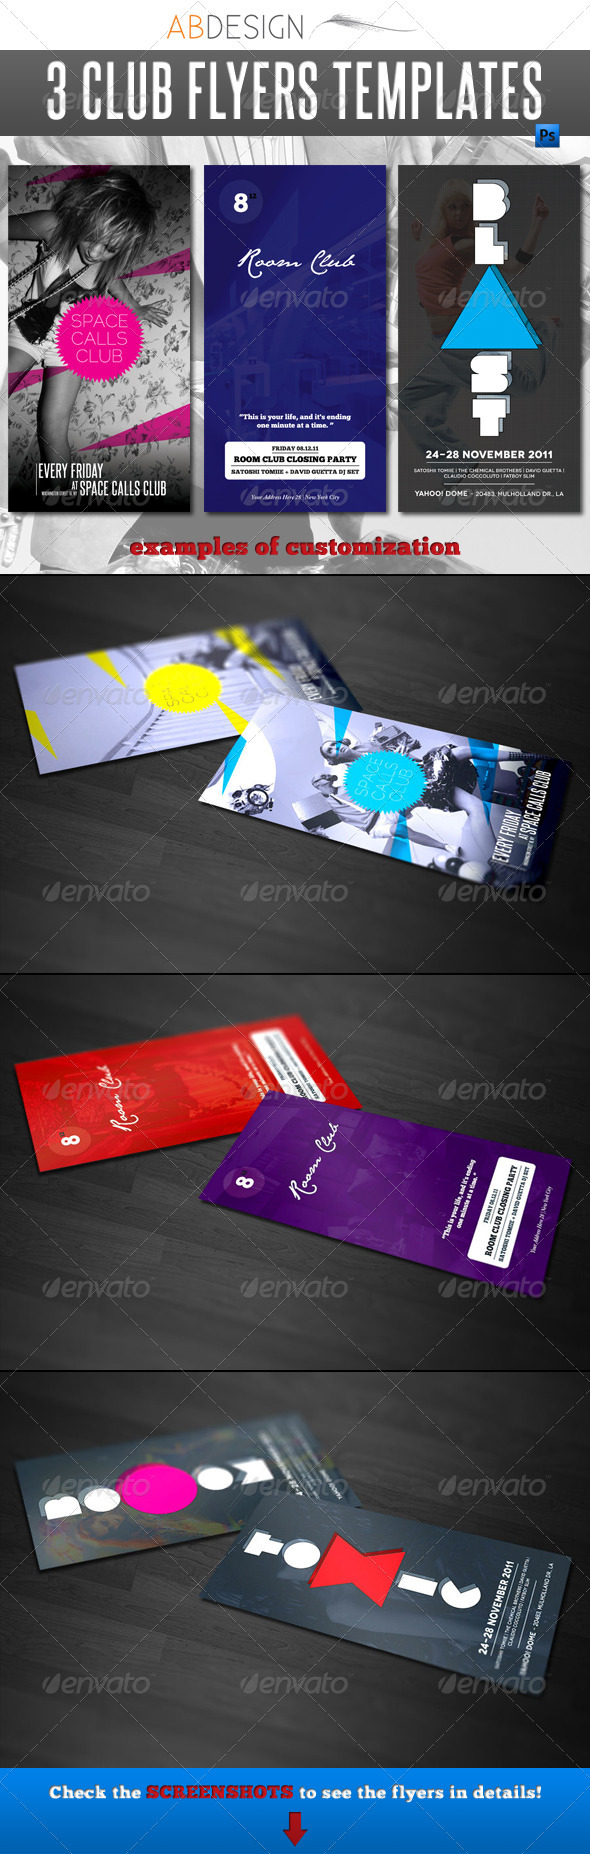 GraphicRiver 3 Club Flyers Templates 667339